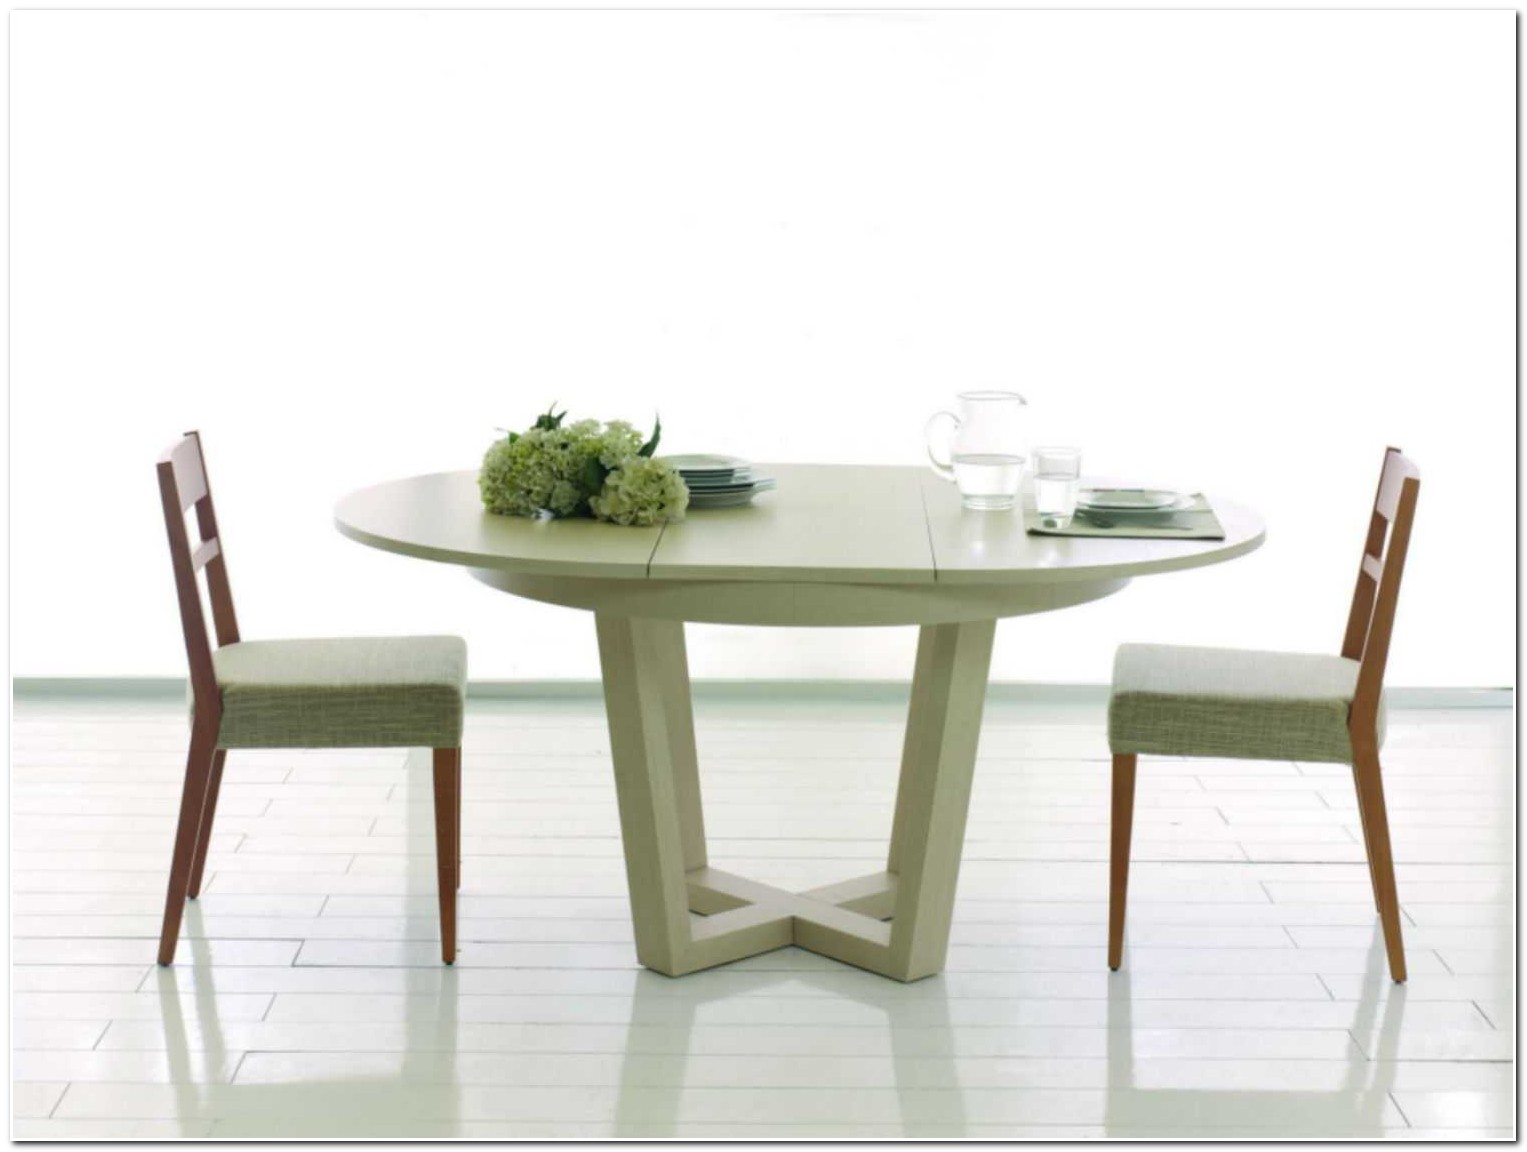 Modele Salle A Manger Table Ronde table salle a manger ronde extensible ikea - salle manger